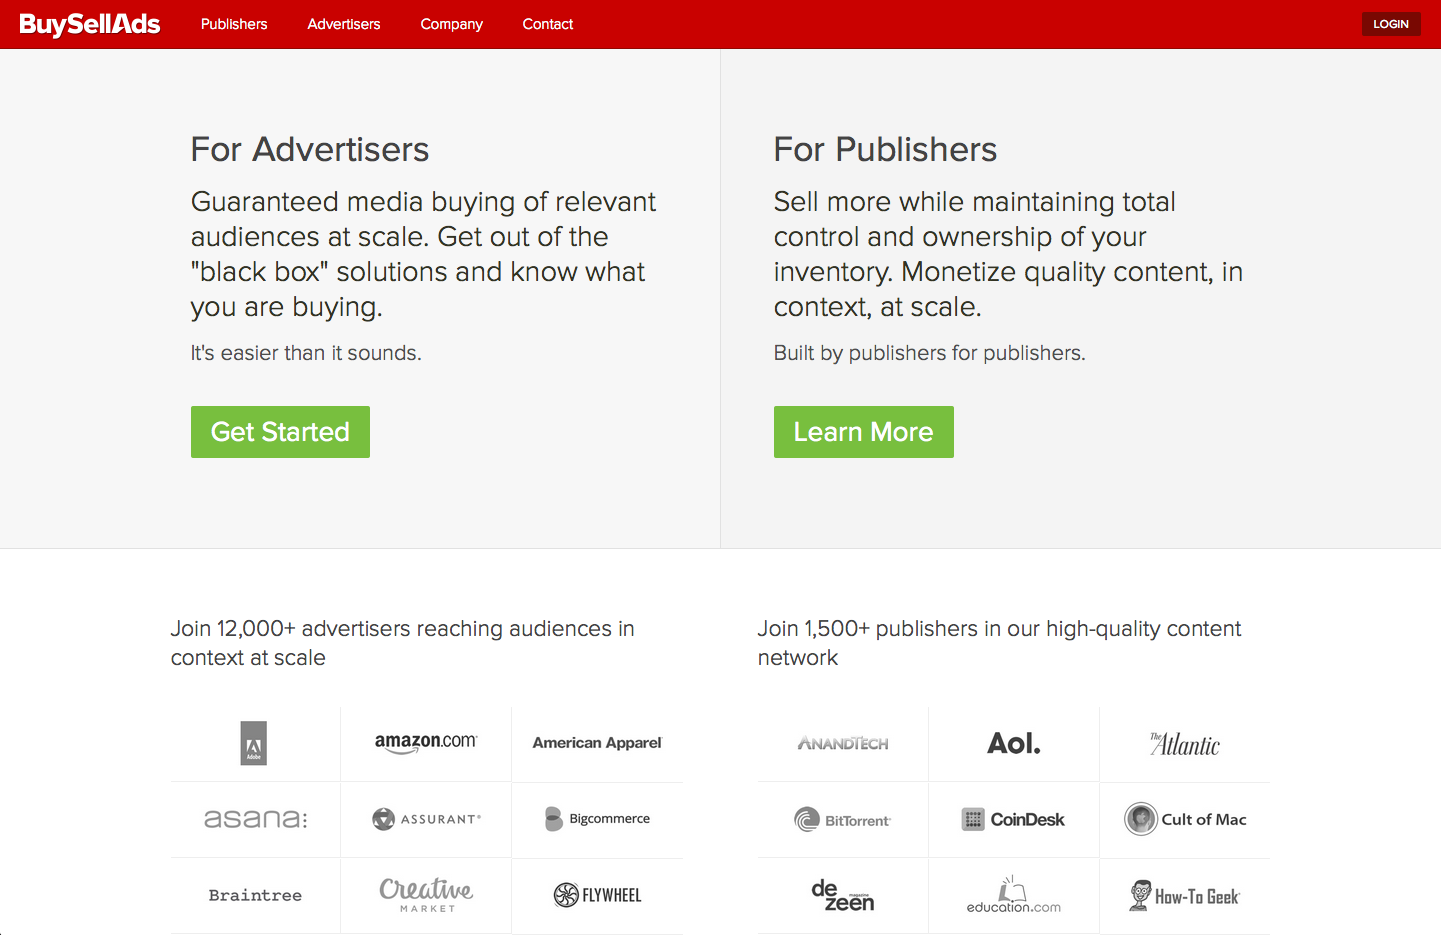 Buysellads ad publishing network, founded by Todd Garland